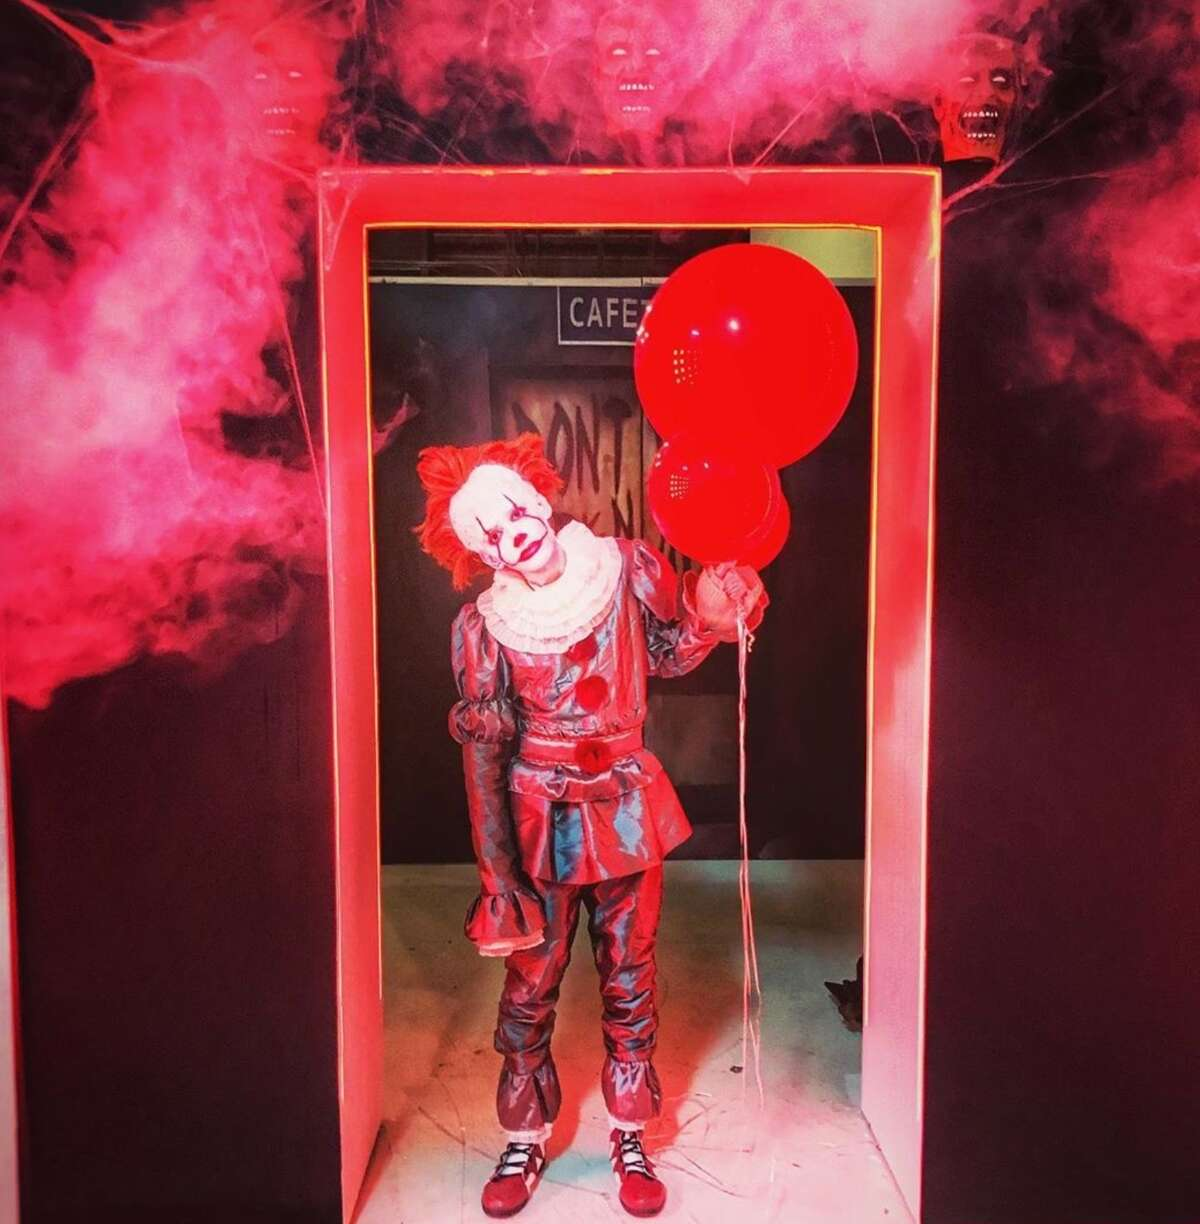 Houston's first interactive Halloween pop-up allows visitors to take part in a chilling photographic experience with professional scary sets, actors, and props.